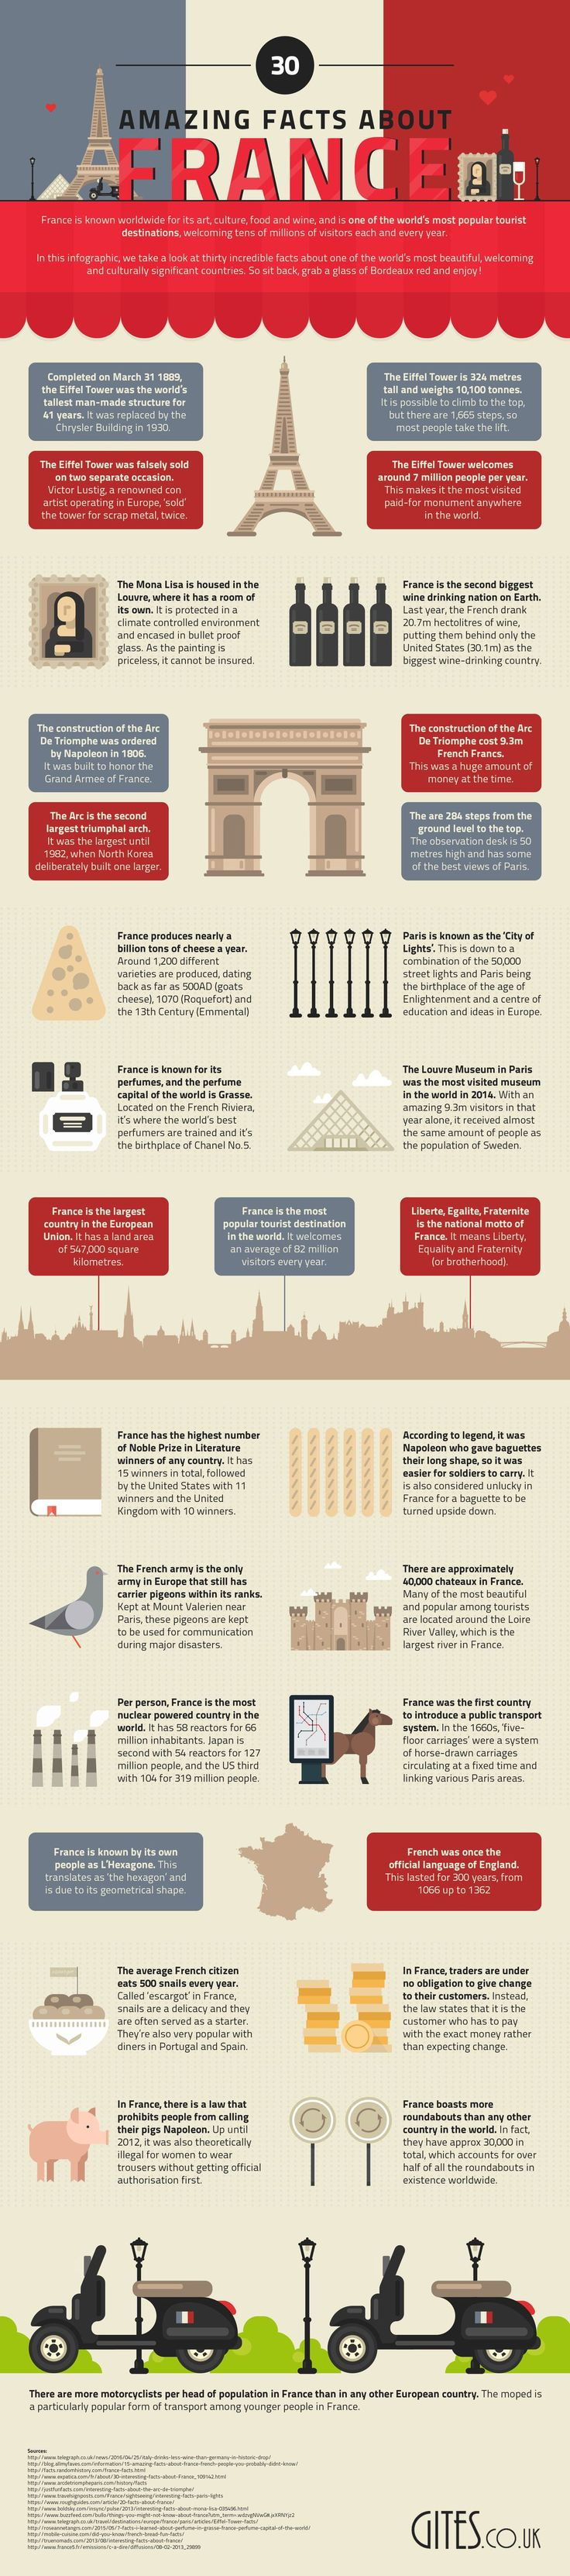 30 Interesting Facts About France #Infographic #Travel